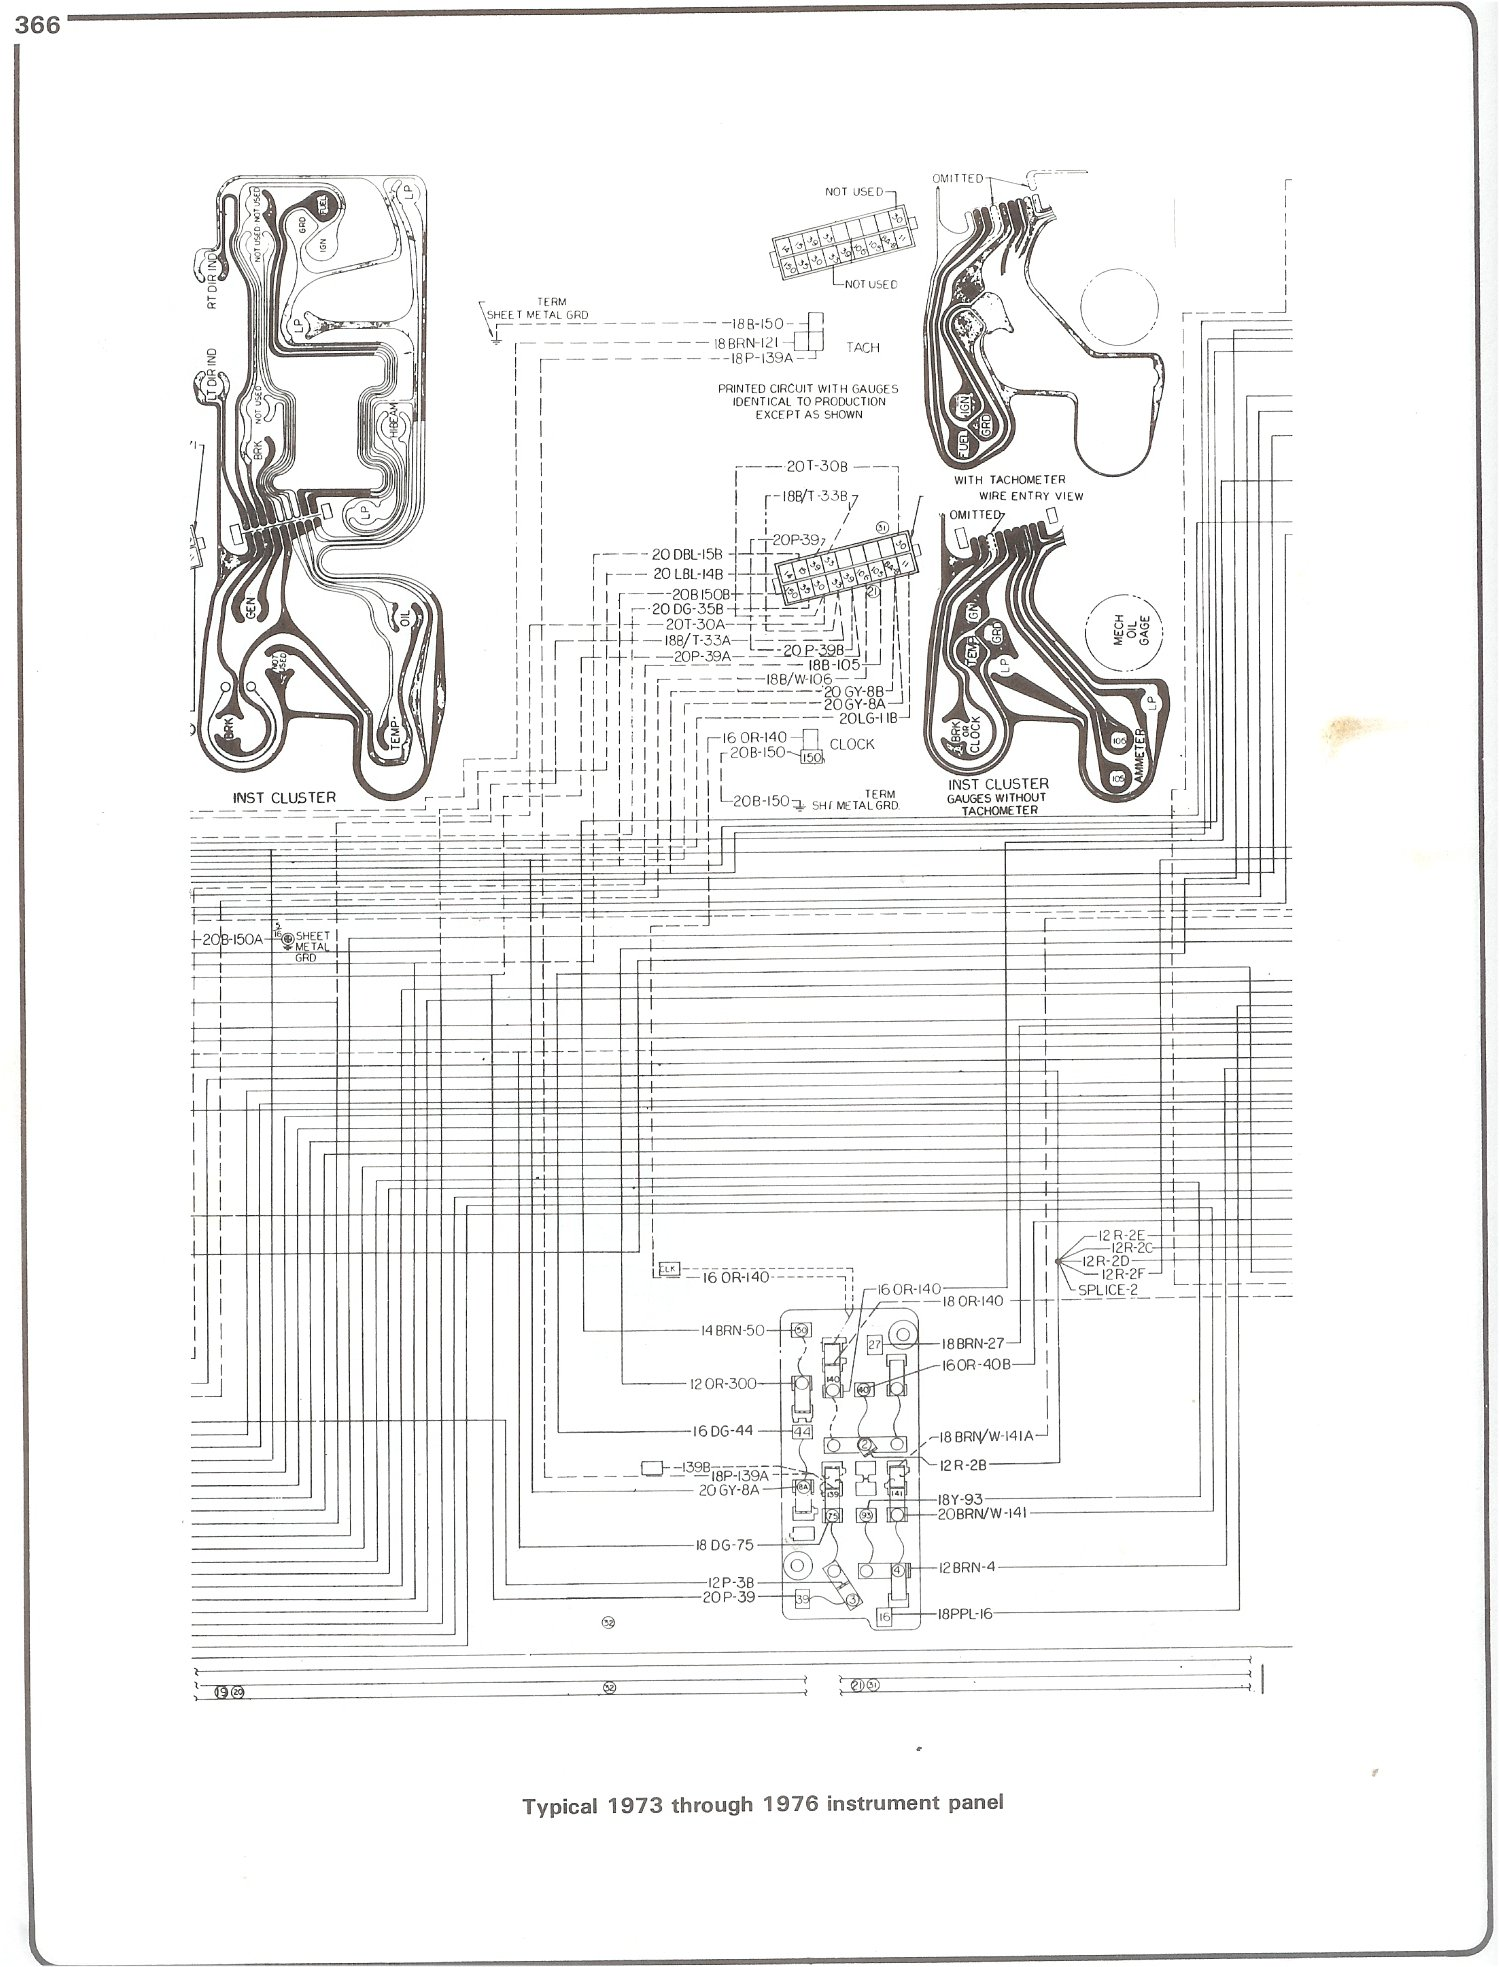 73 76_instrument 73 chevy truck wiring diagrams gm painless wiring diagram 73 chevy 87 chevy truck wiring diagram at creativeand.co